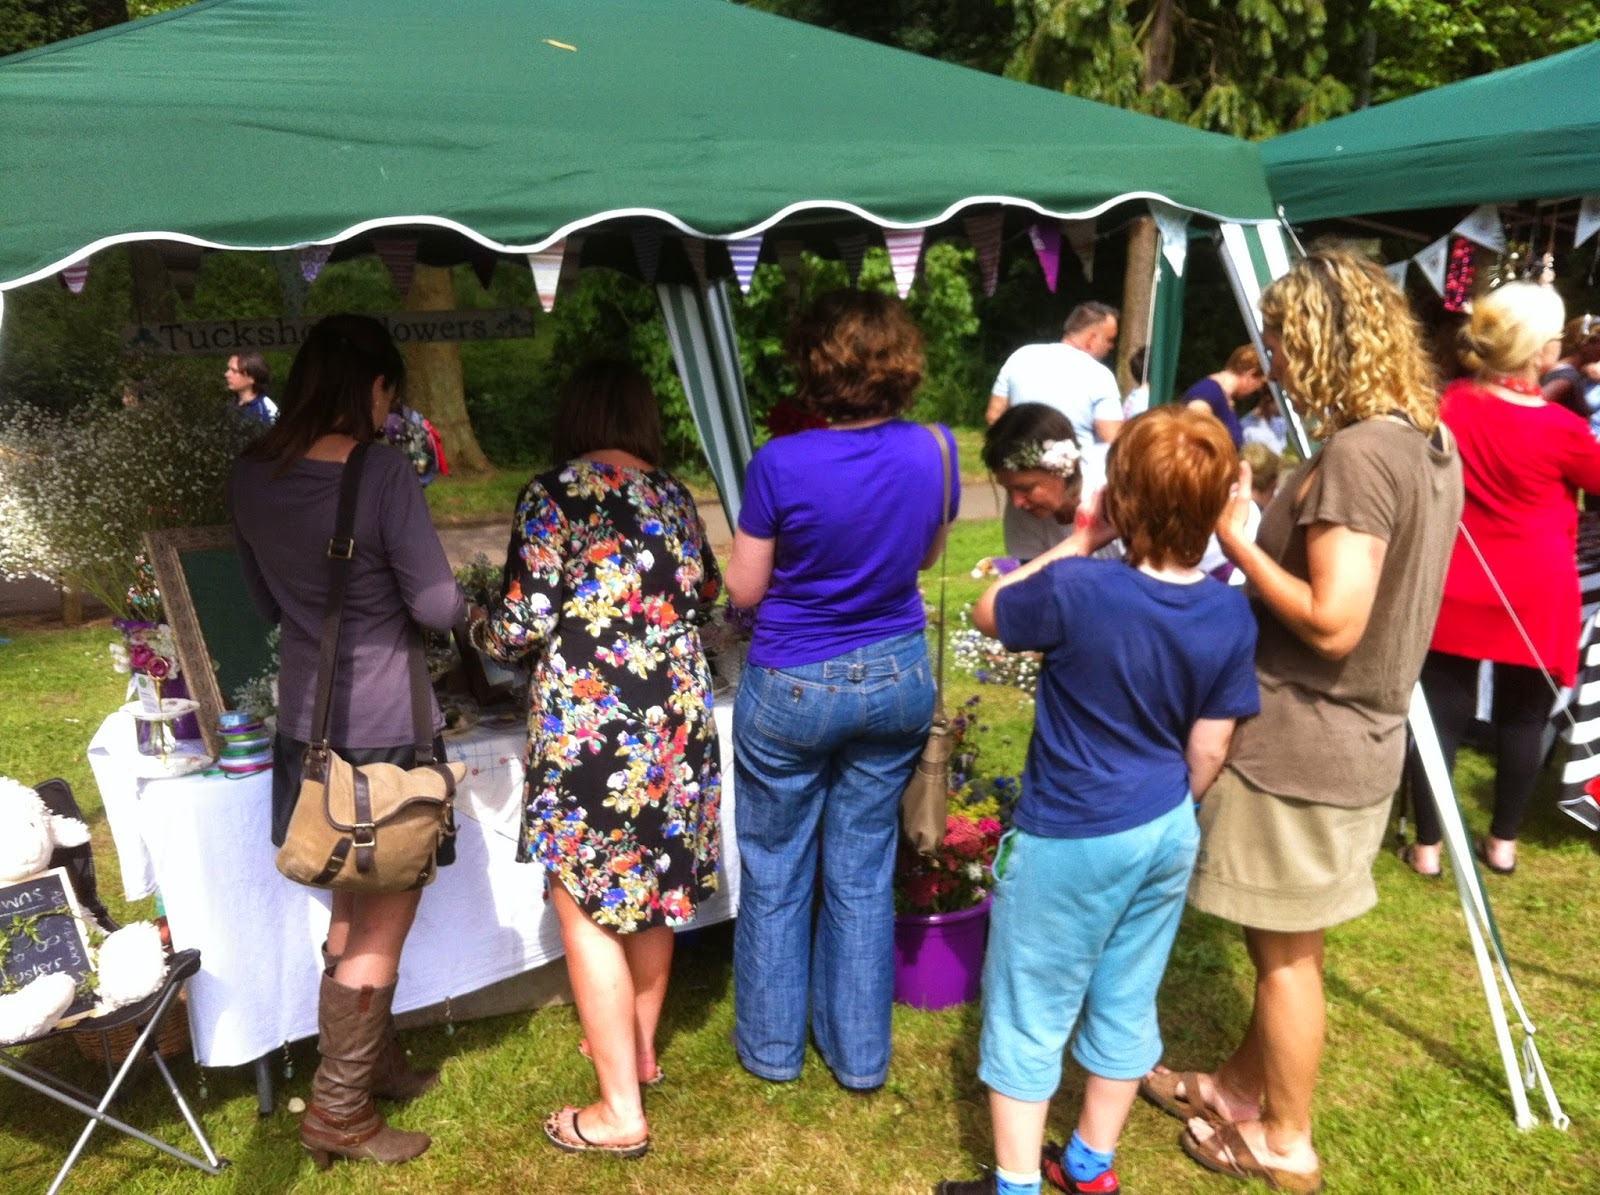 The crowns proved popular at the festival